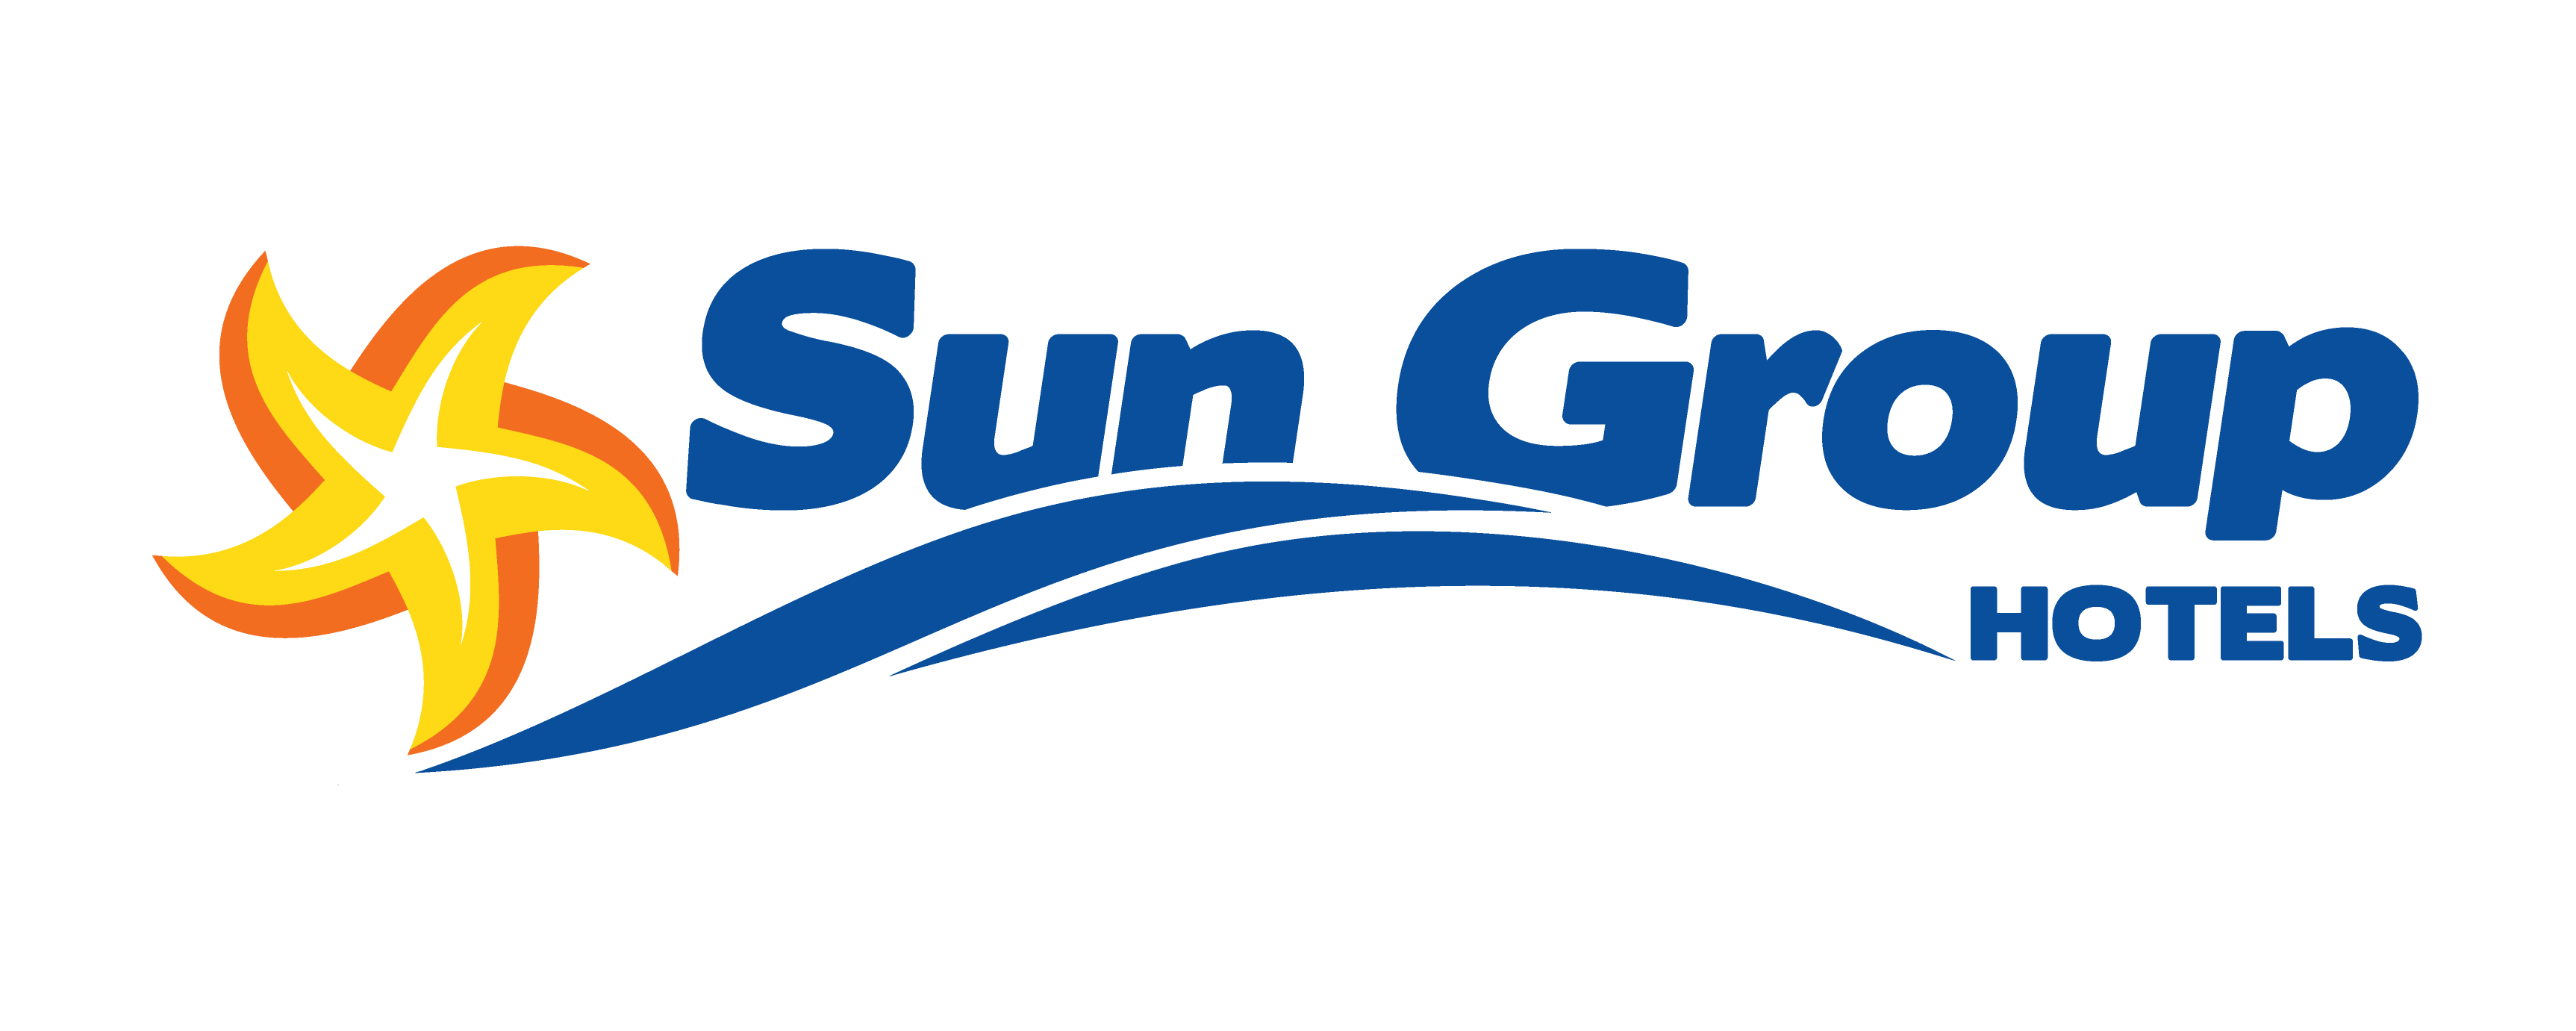 SUN GROUP HOTELS LOGO FINAL 03